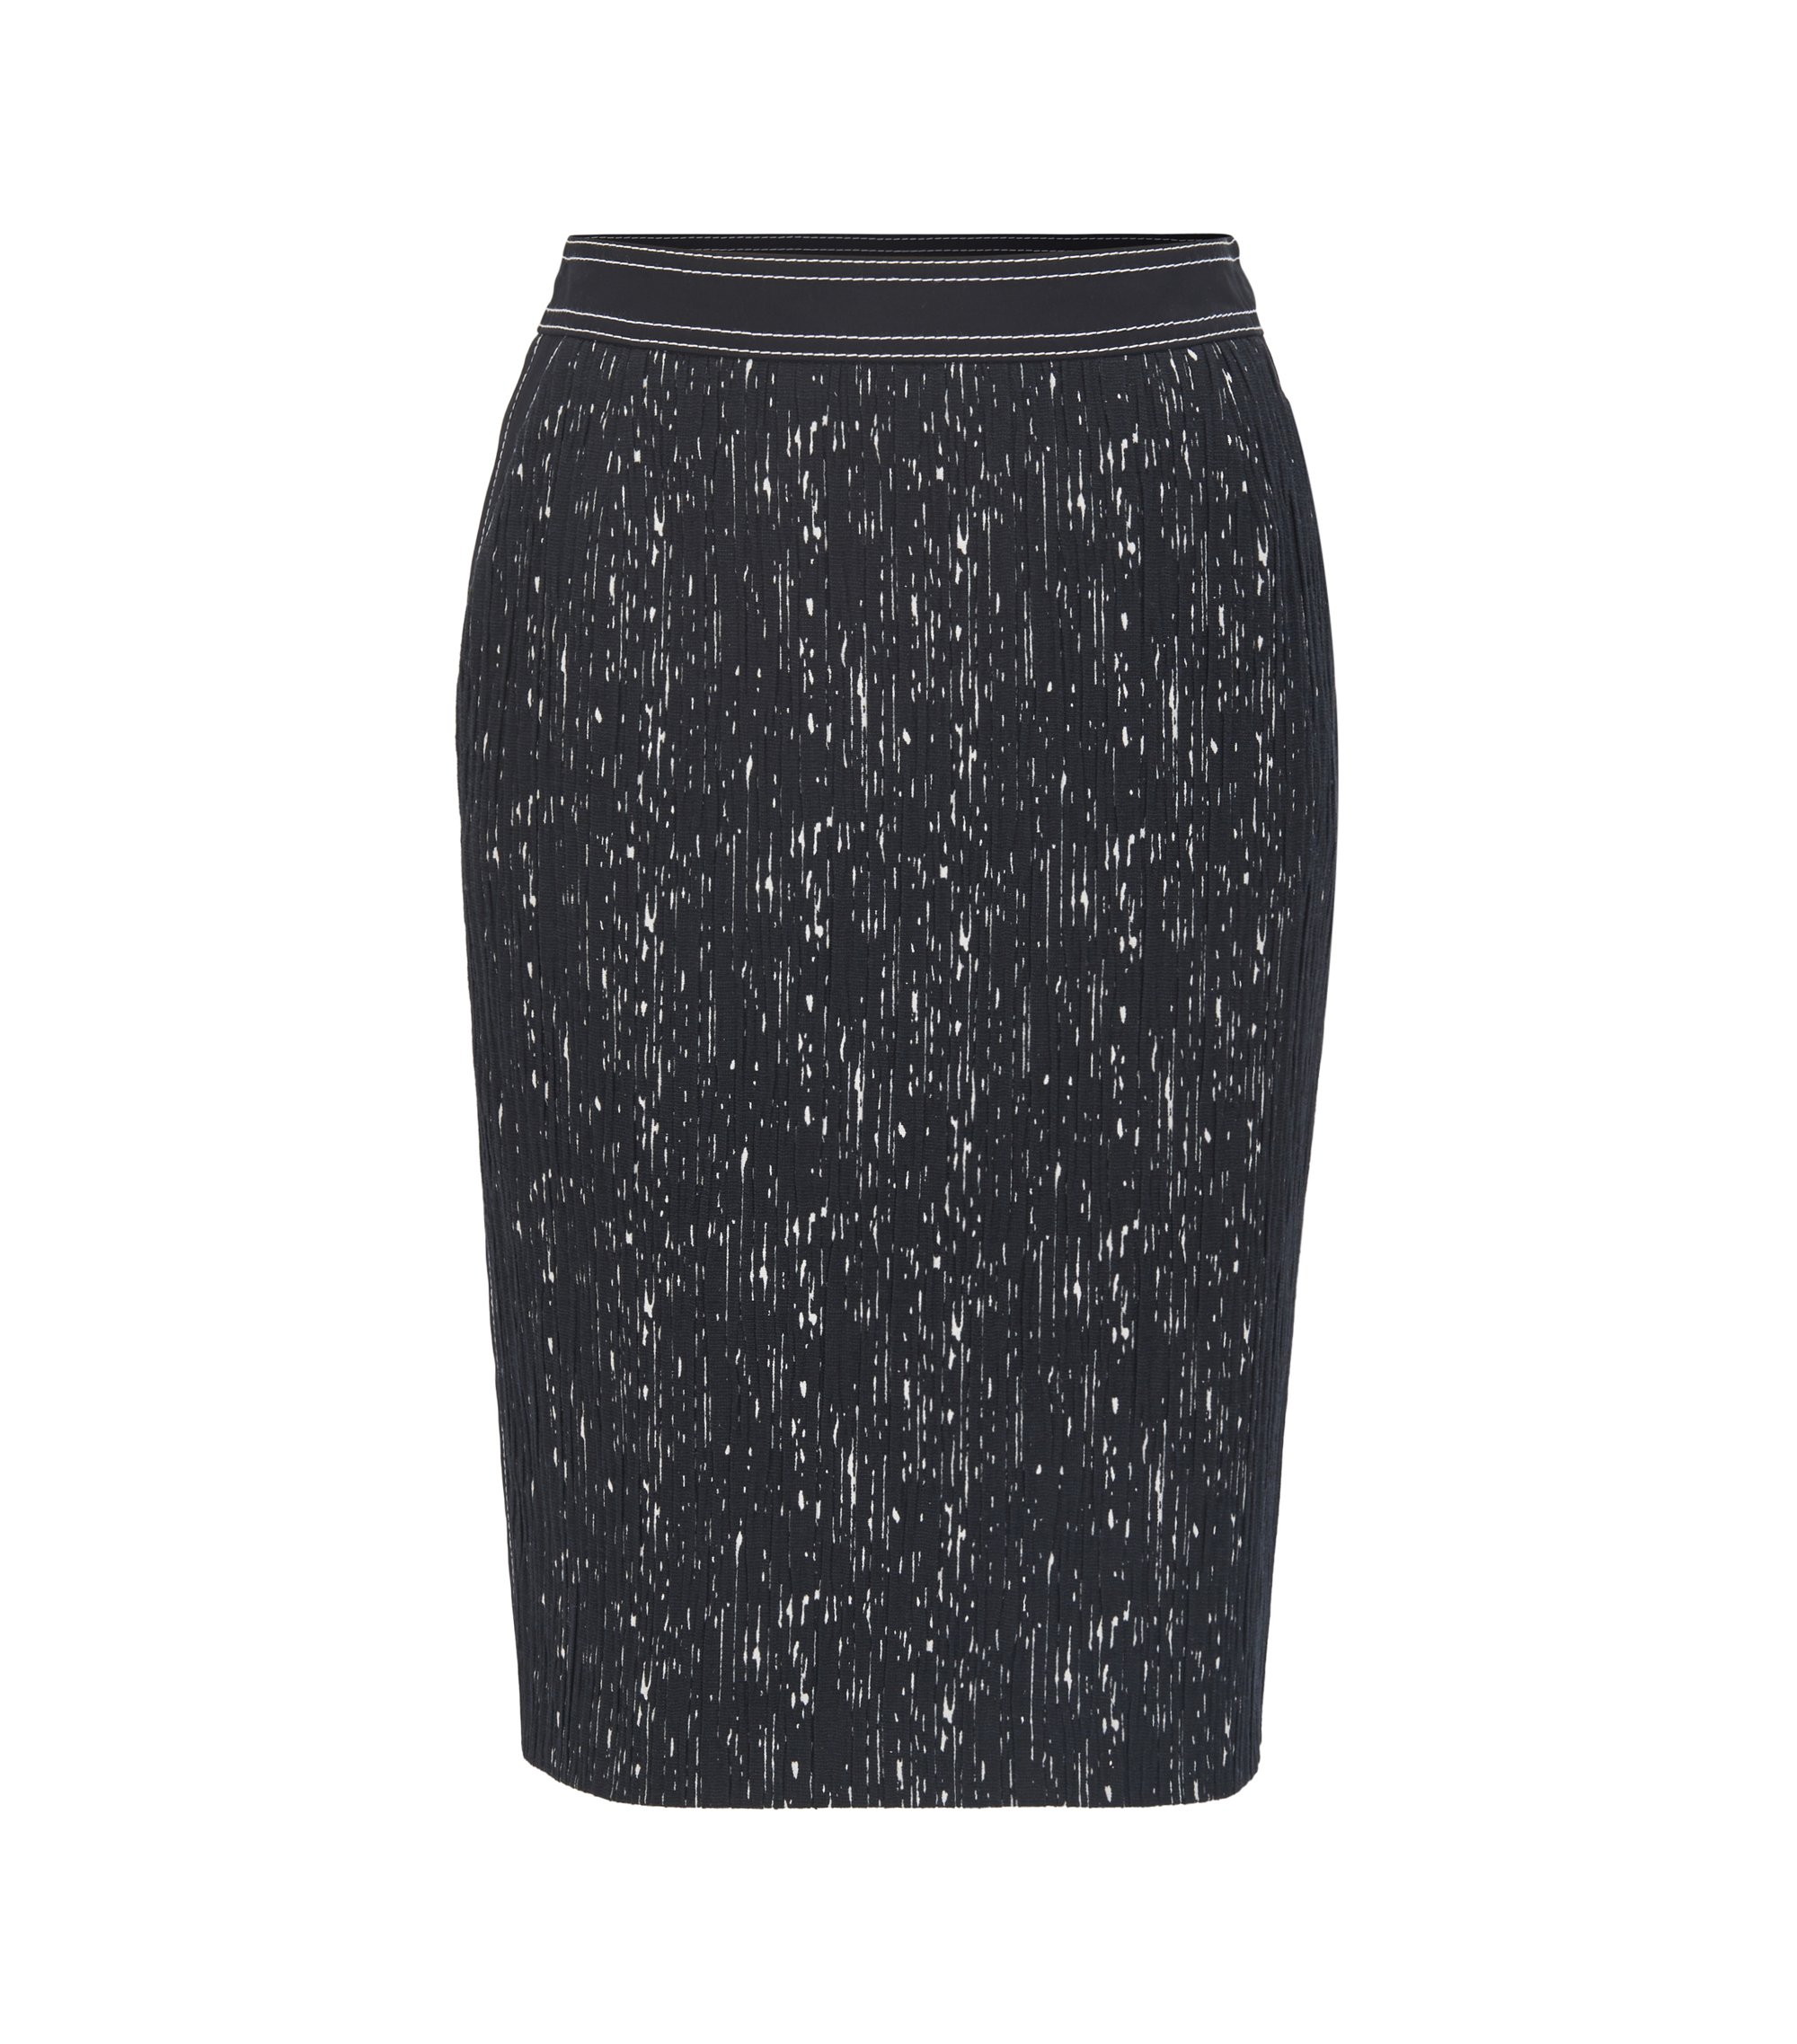 Patterned Plissé Pencil Skirt | Veleara, Patterned